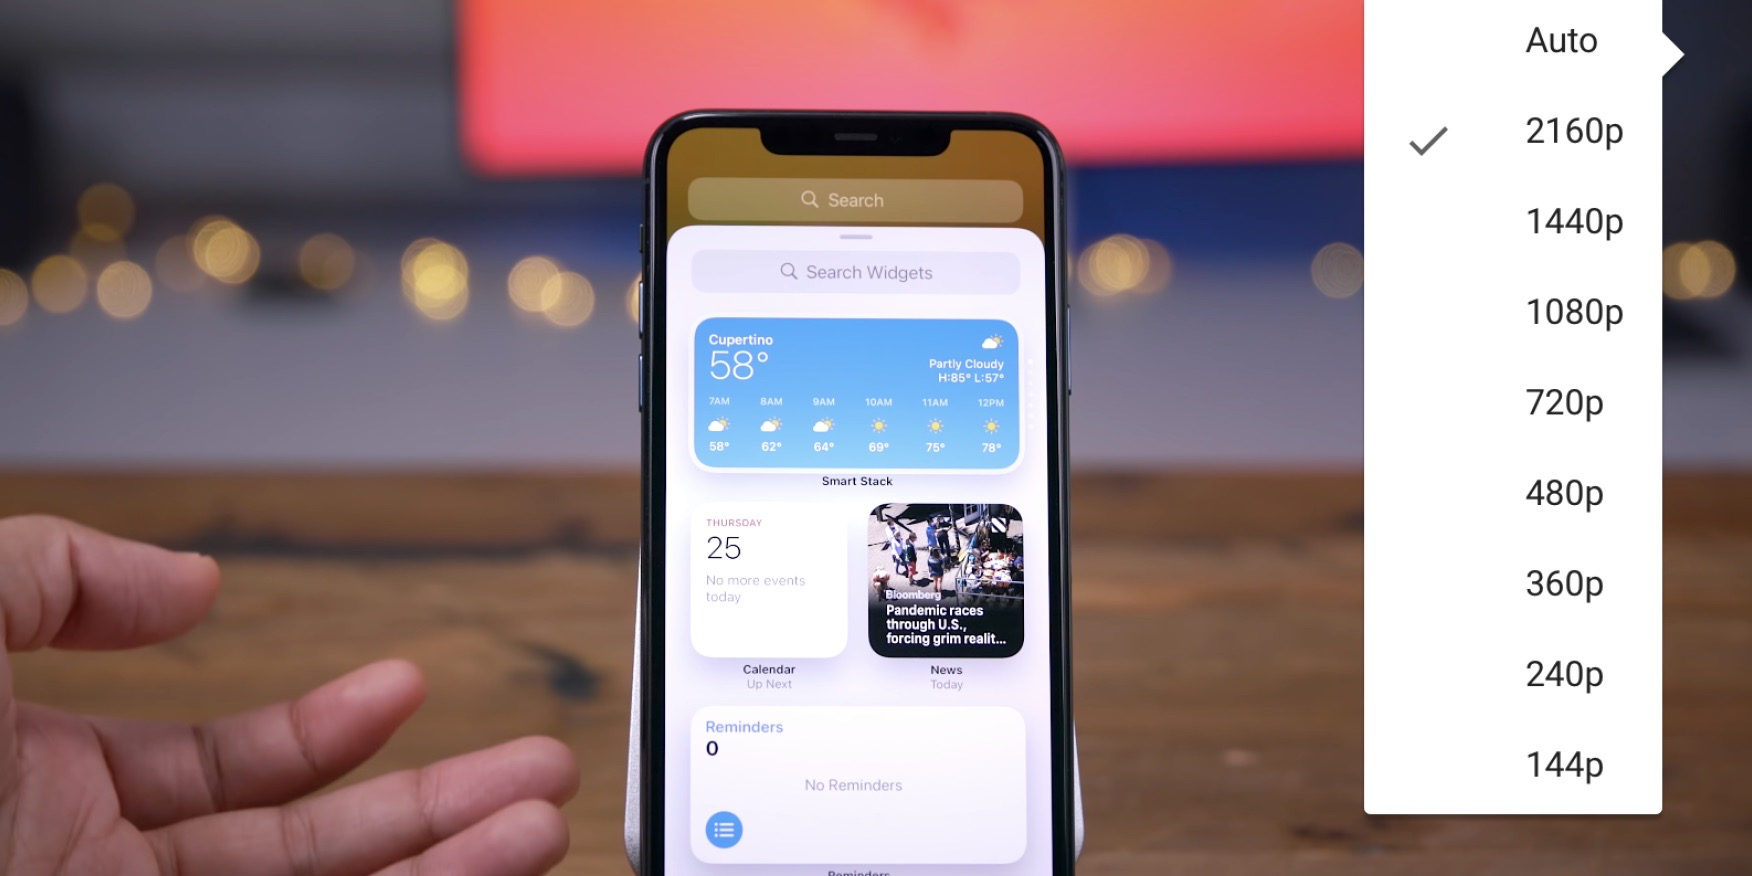 iOS 14: How to watch 4K YouTube videos on iPhone iPad and Apple TV – 9to5Mac